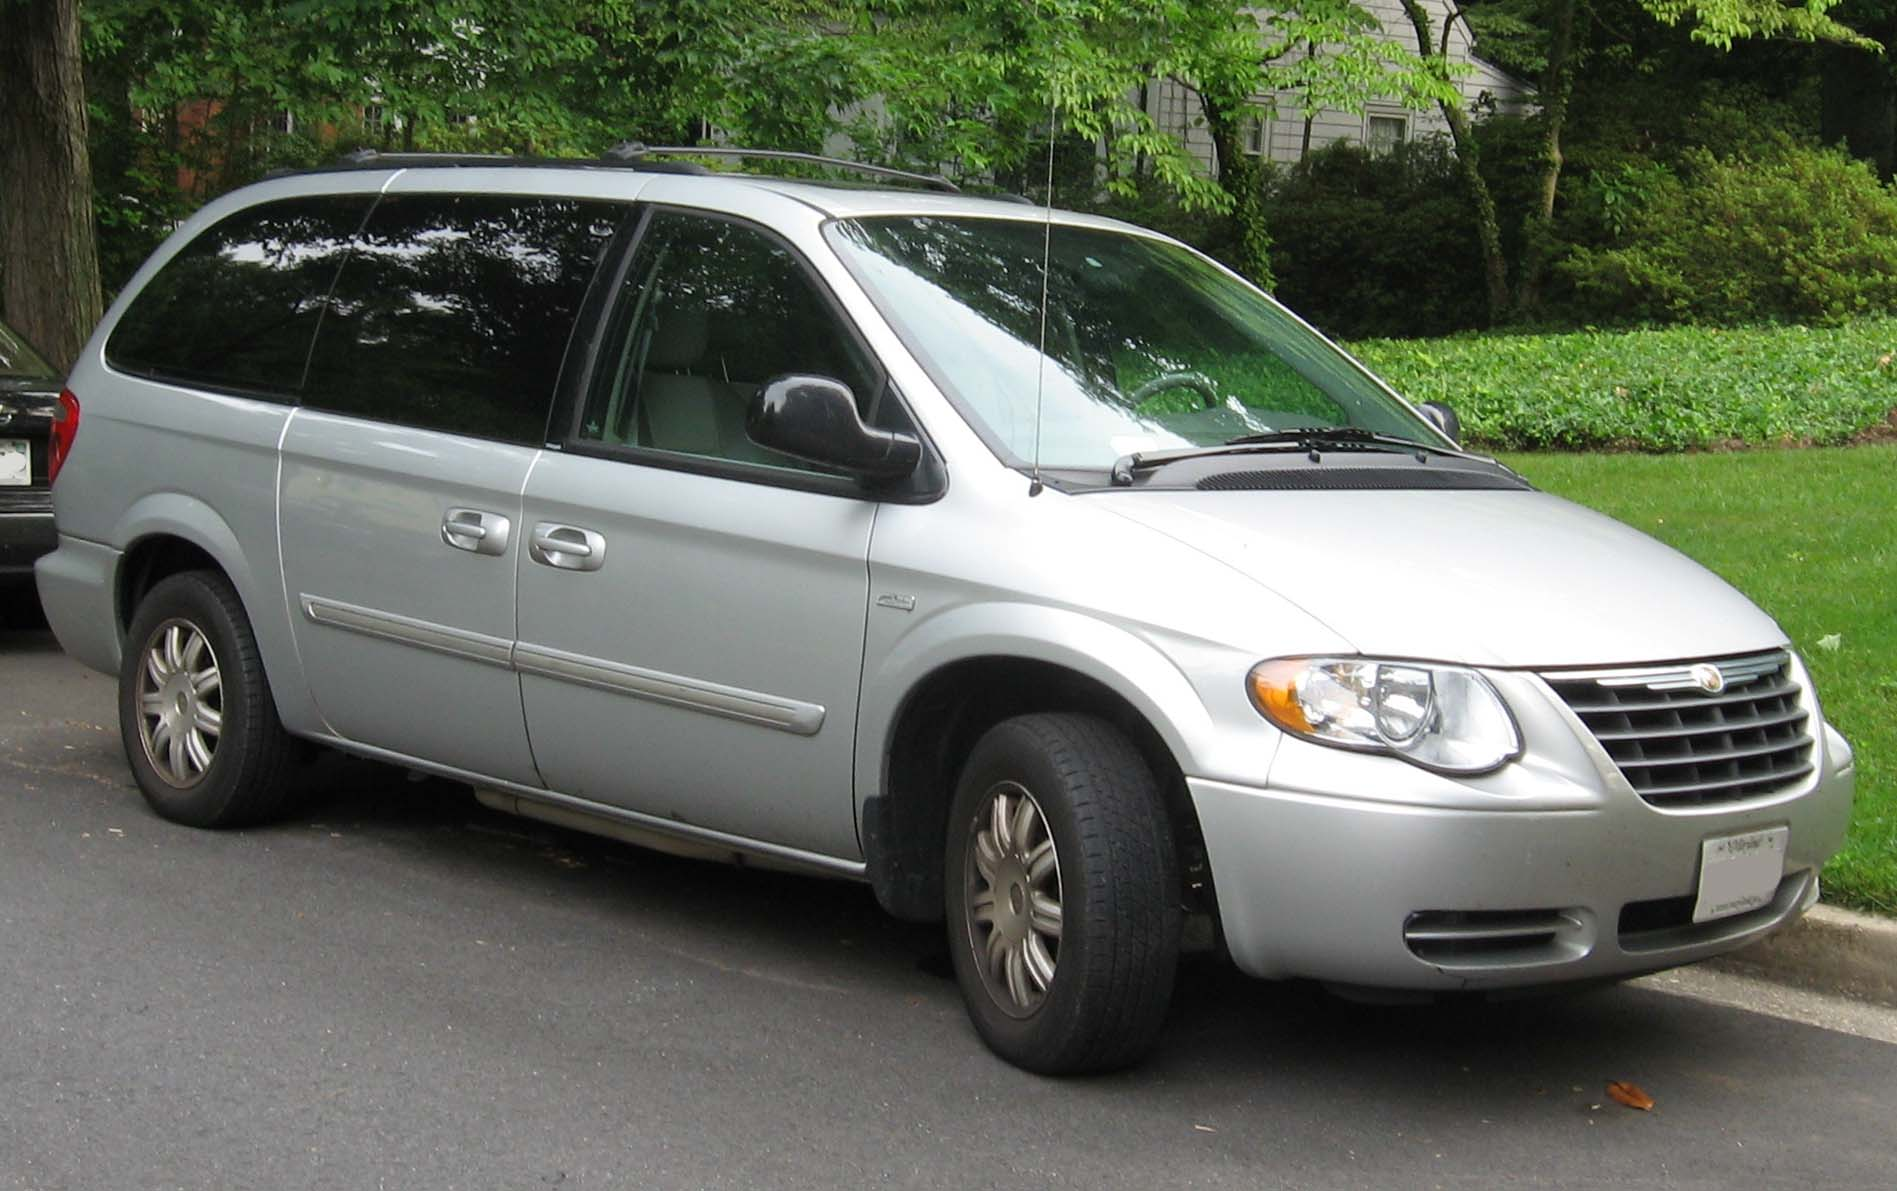 05 07 chrysler town and country lx. Cars Review. Best American Auto & Cars Review